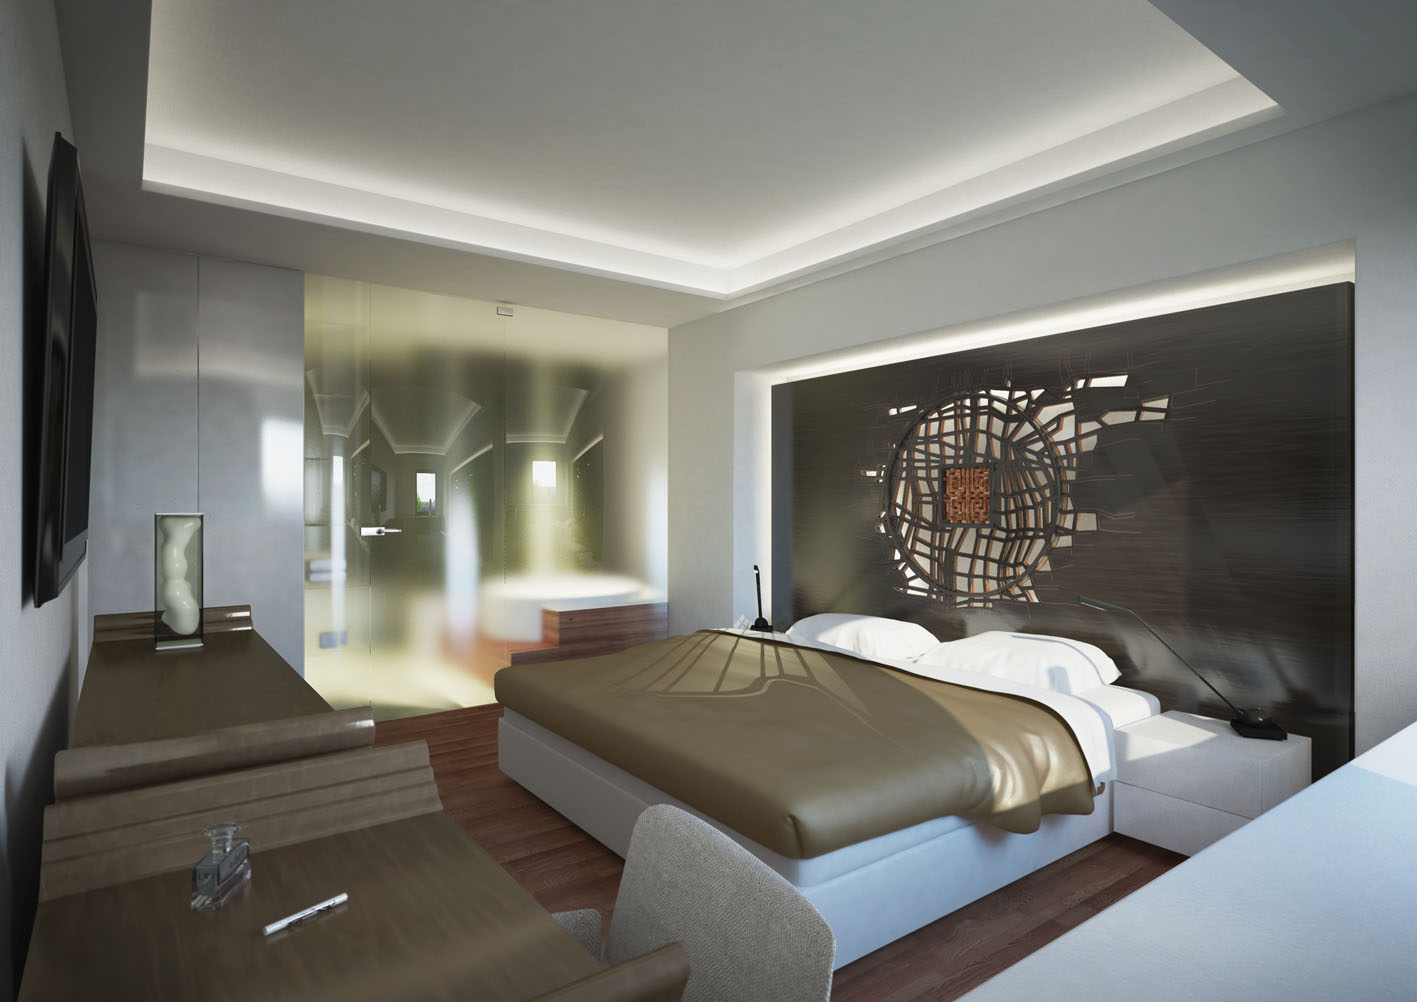 appartmenthotel sichau walter architekten bda fulda. Black Bedroom Furniture Sets. Home Design Ideas